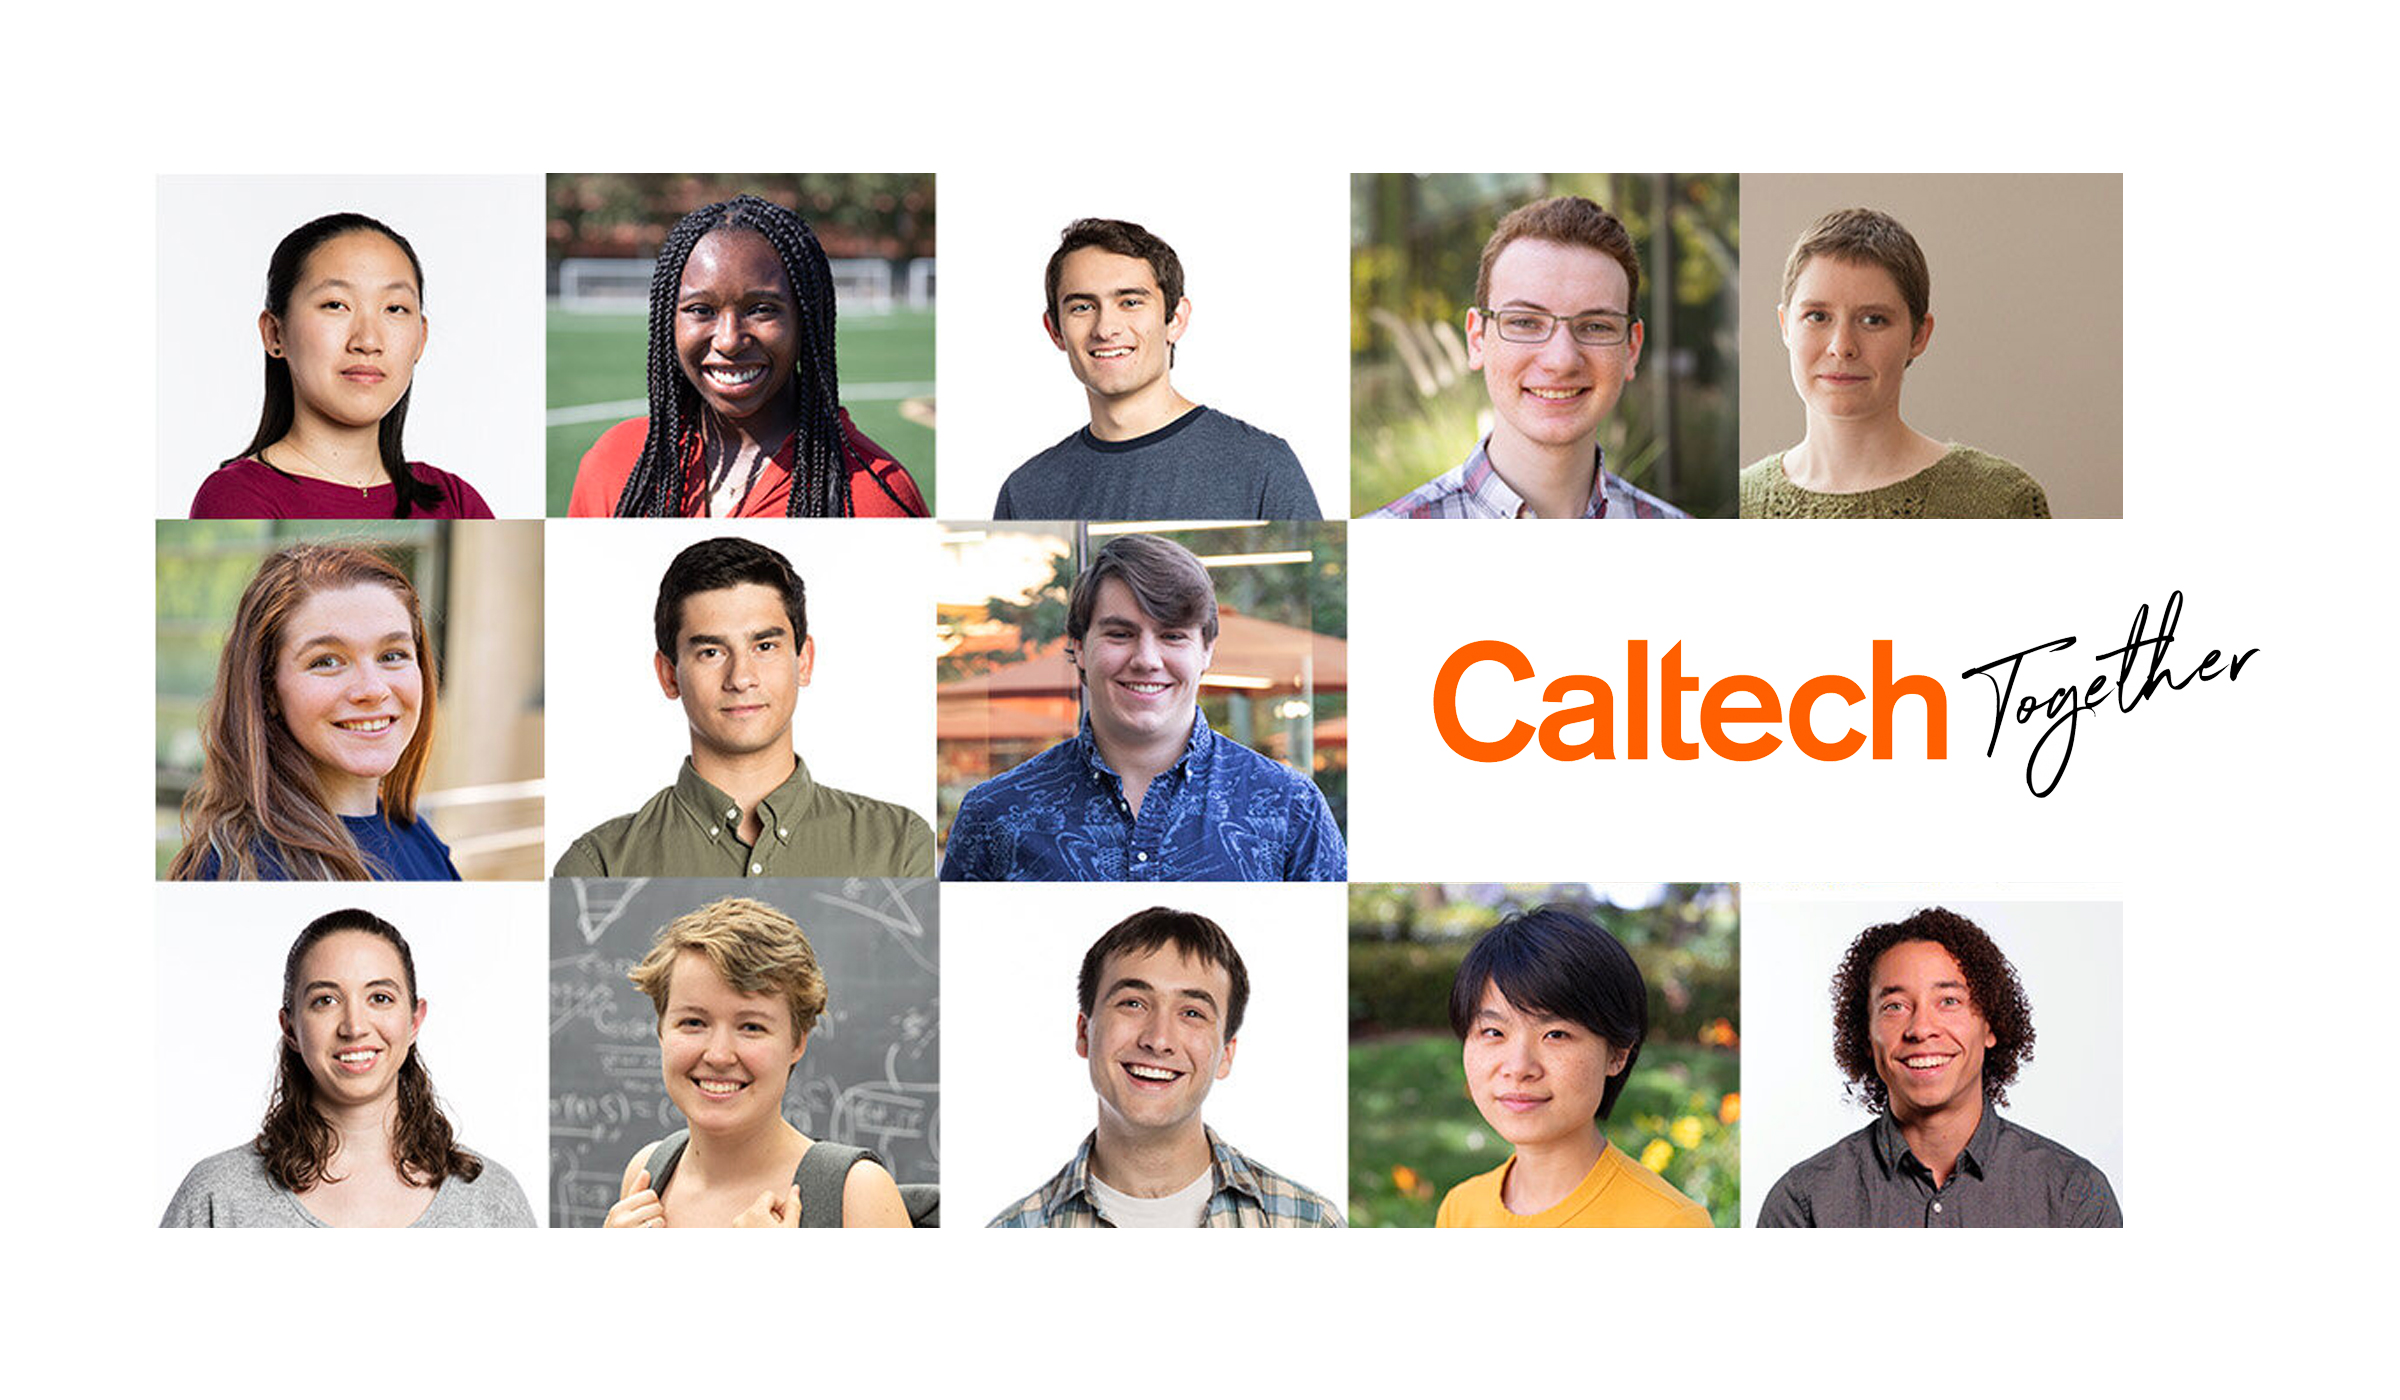 Supporting Our Students: Caltech Together